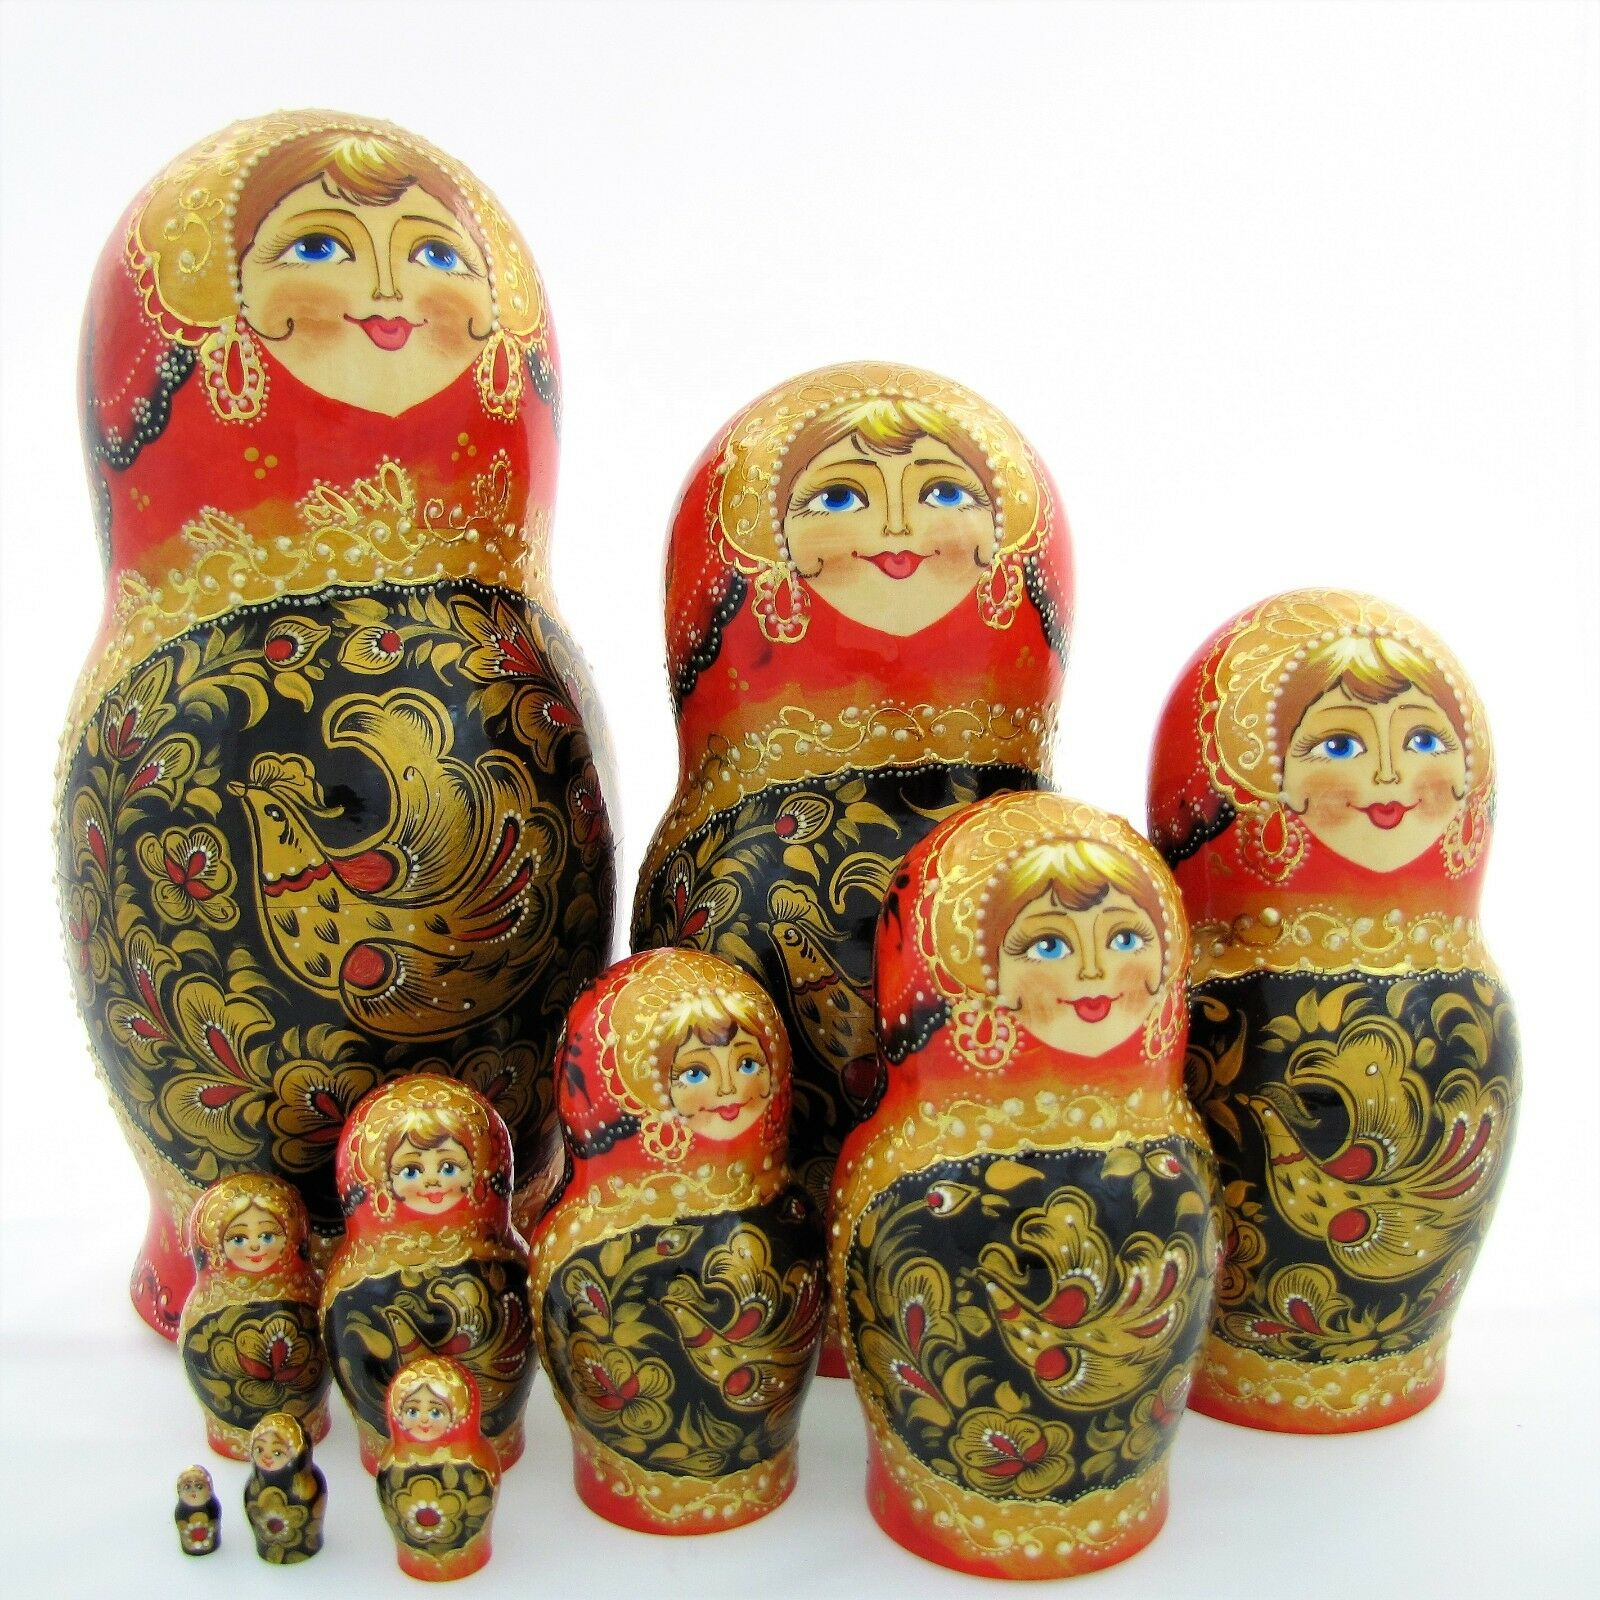 10 Poupées russe H32 Matriochka peint main signé Russian Nested Doll Matrioshka